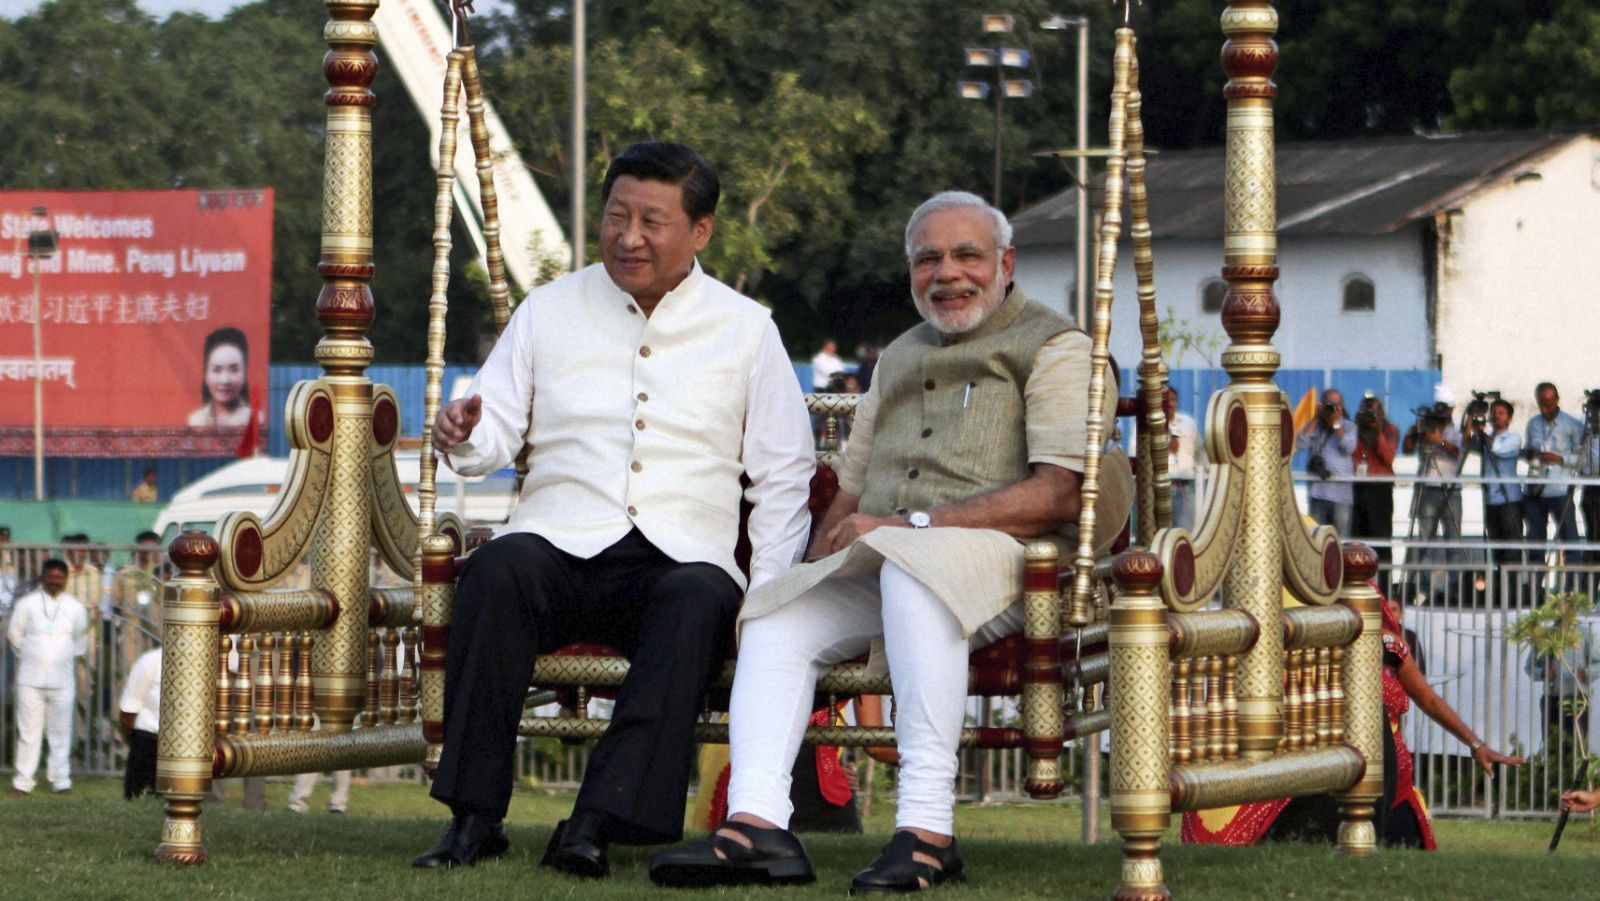 Chinese President Xi Jinping, left and Indian Prime Minister Narendra Modi, sit on a traditional swing at the Sabarmati River front in Ahmadabad, India, Wednesday, Sept. 17, 2014. Xi landed in the Indian prime minister's home state of Gujarat on Wednesday for a three-day visit expected to focus on India's need to improve worn out infrastructure and reduce its trade deficit.